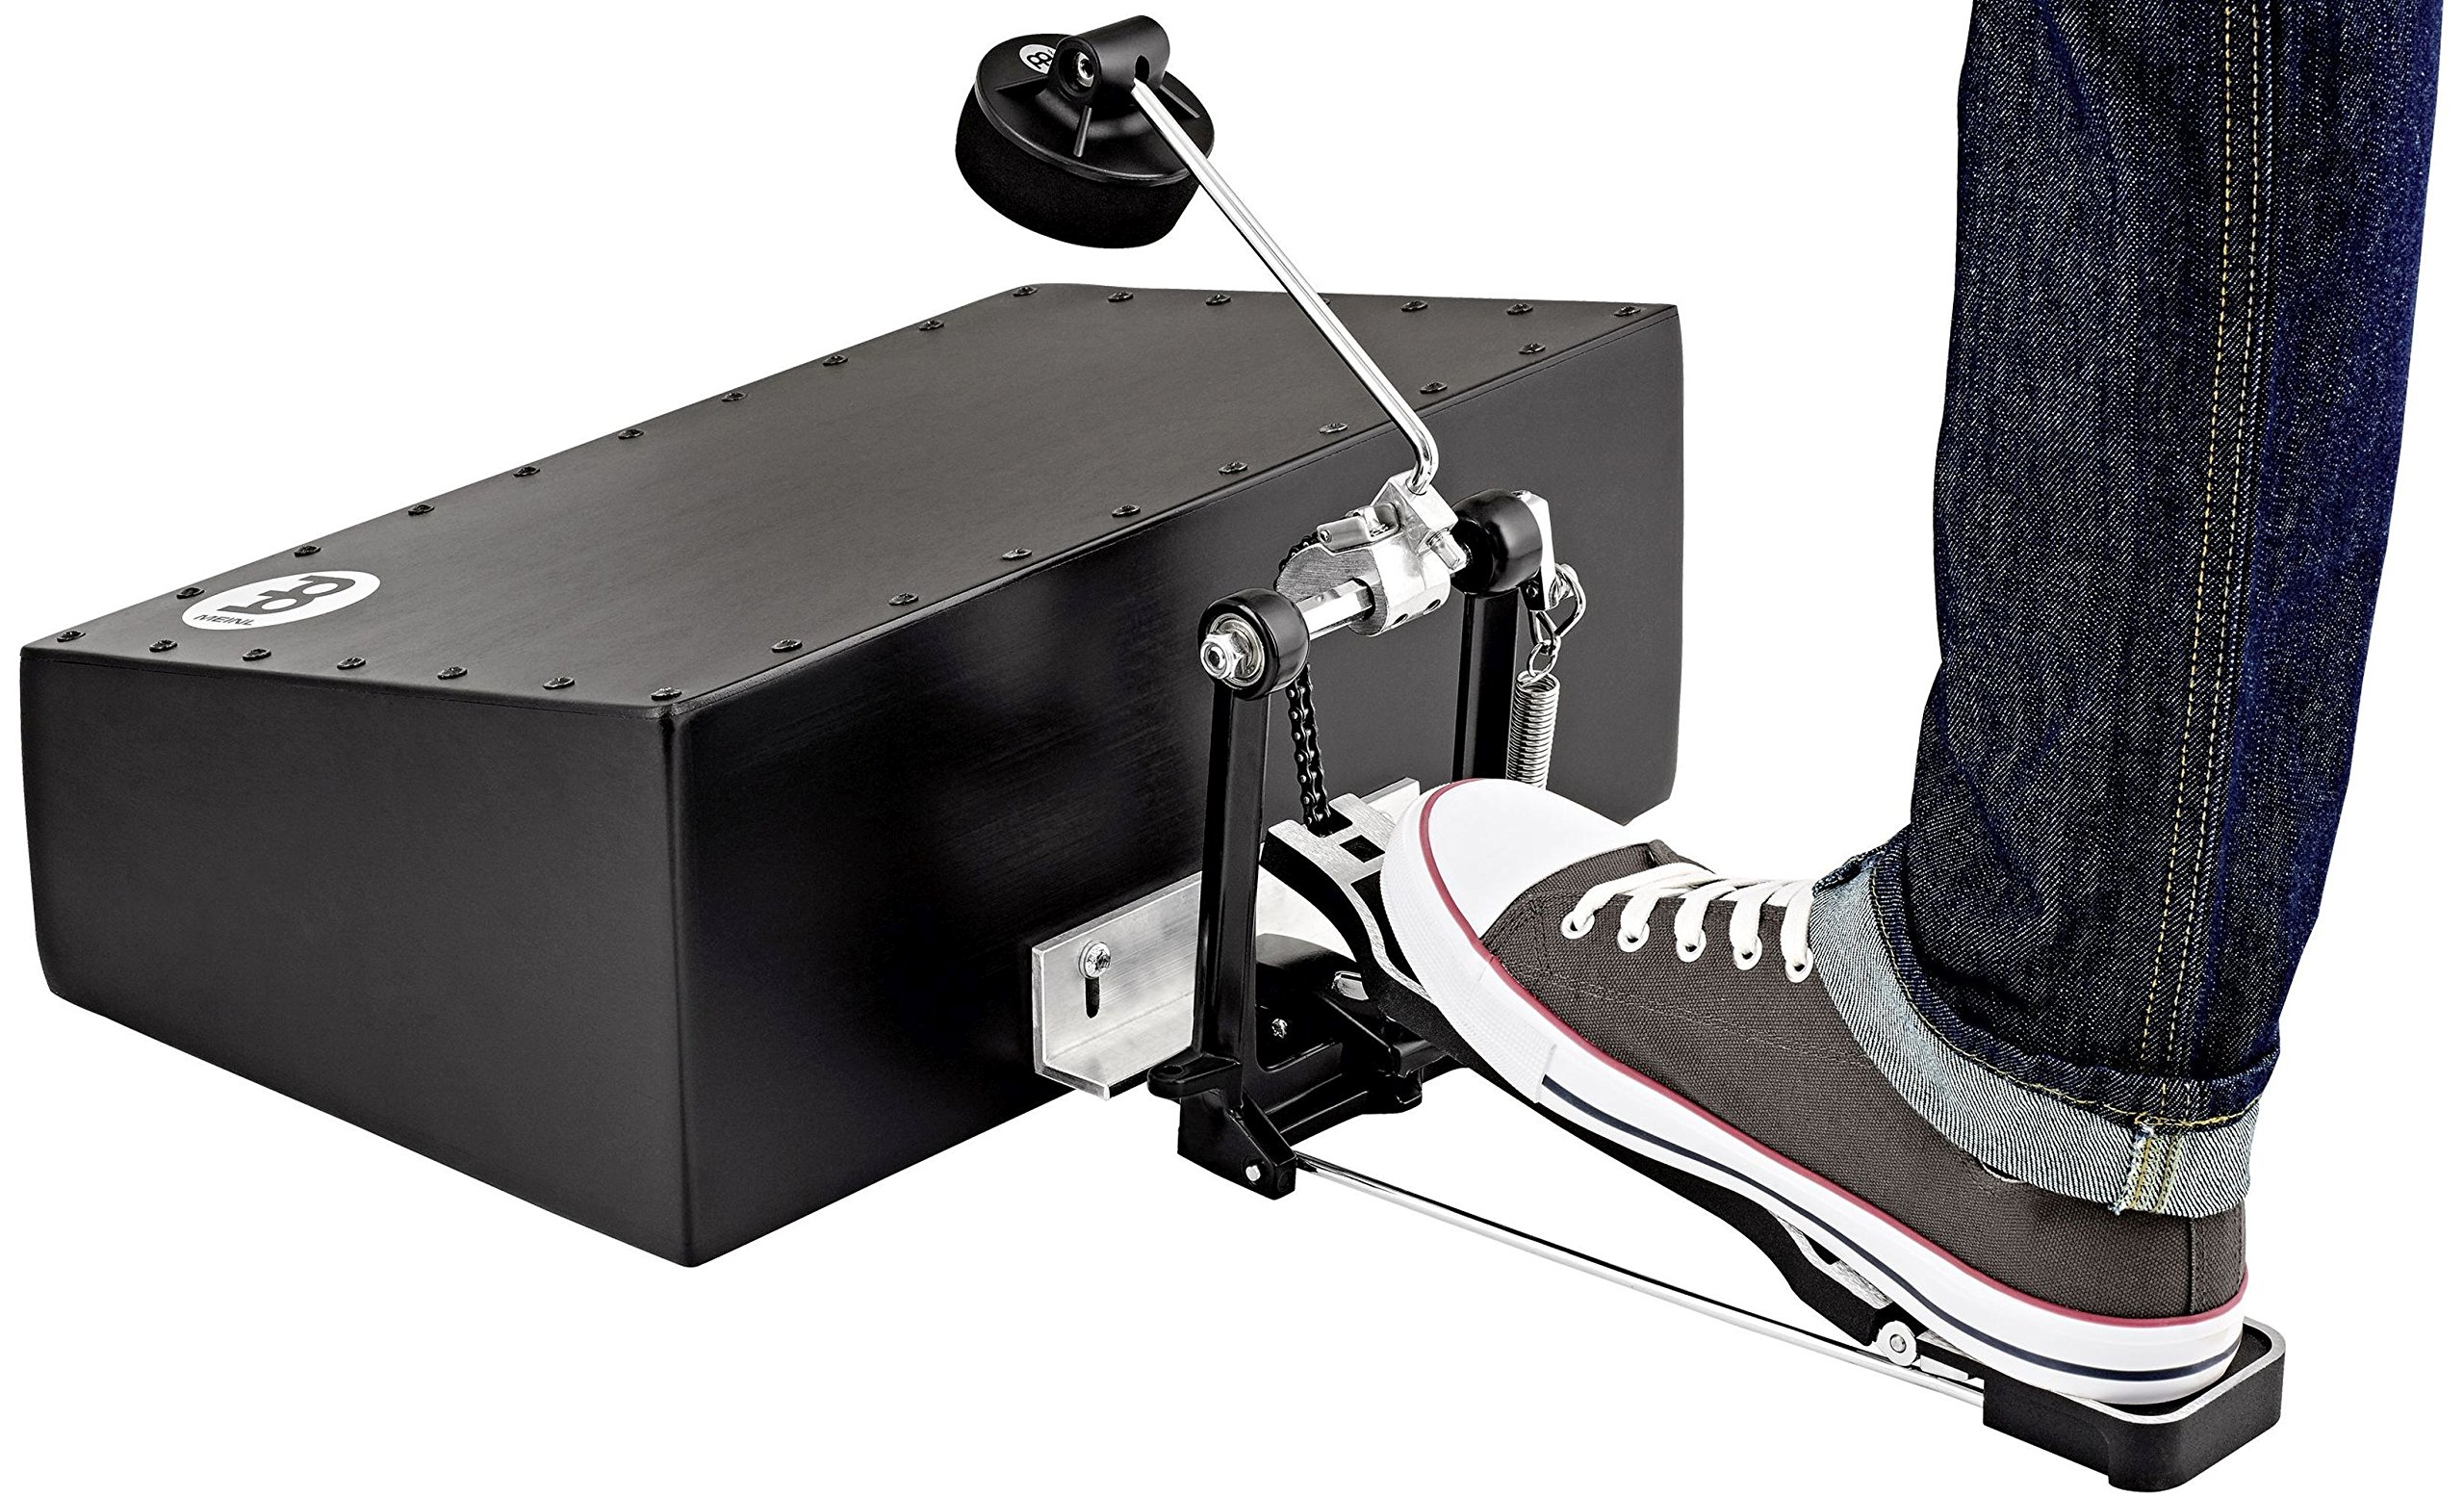 Meinl Percussion BASSBOX Acoustic Cajon Stomp Box with L-Shaped Beater, Black (VIDEO) by Meinl Percussion (Image #2)